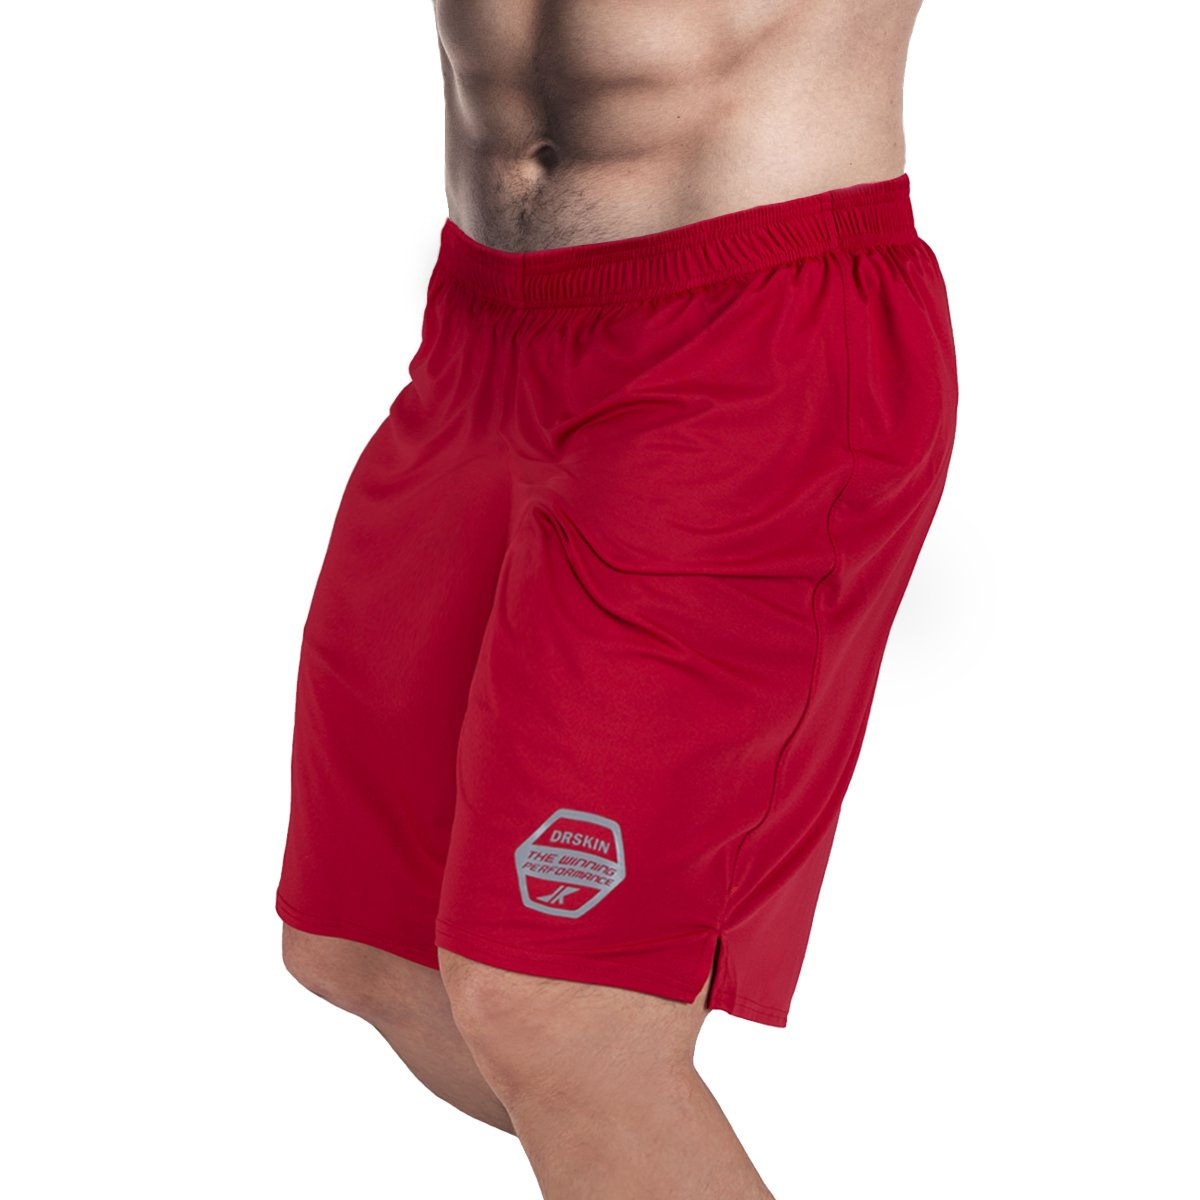 DRSKIN Men's Quick Dry Sports Running Active Shorts Pants